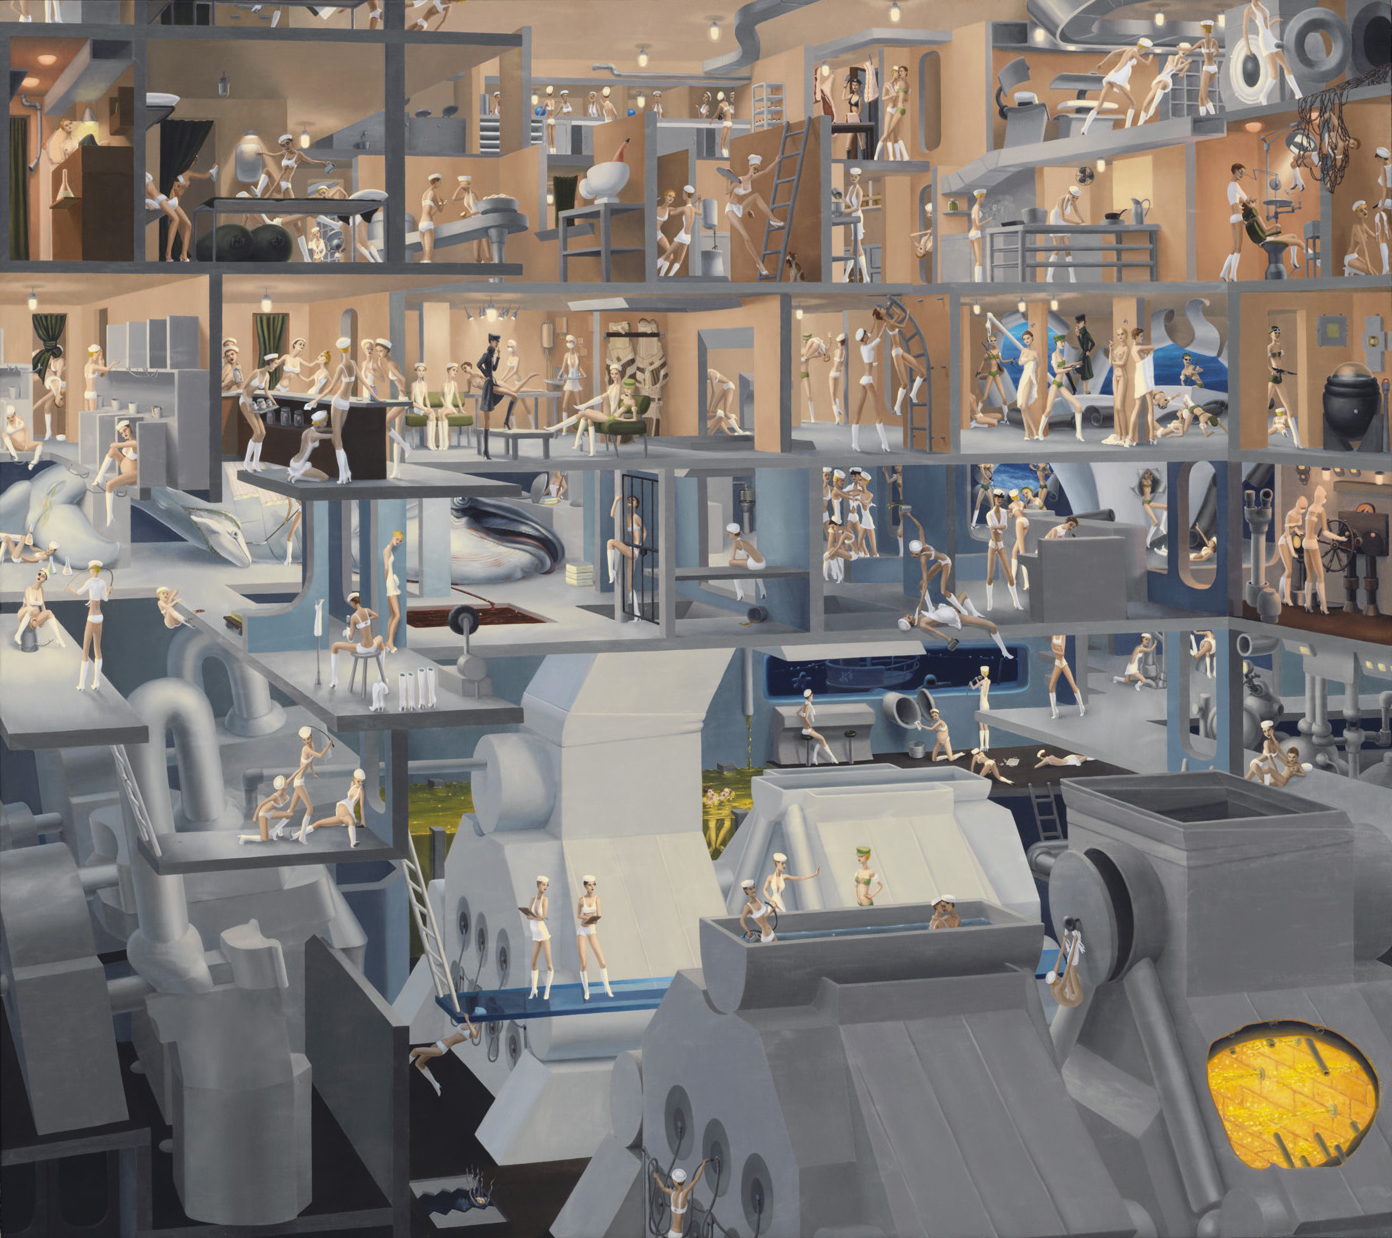 Heavy Cruisers Oil on linen 33 by 37 inches 2004  Click on image for detail shots